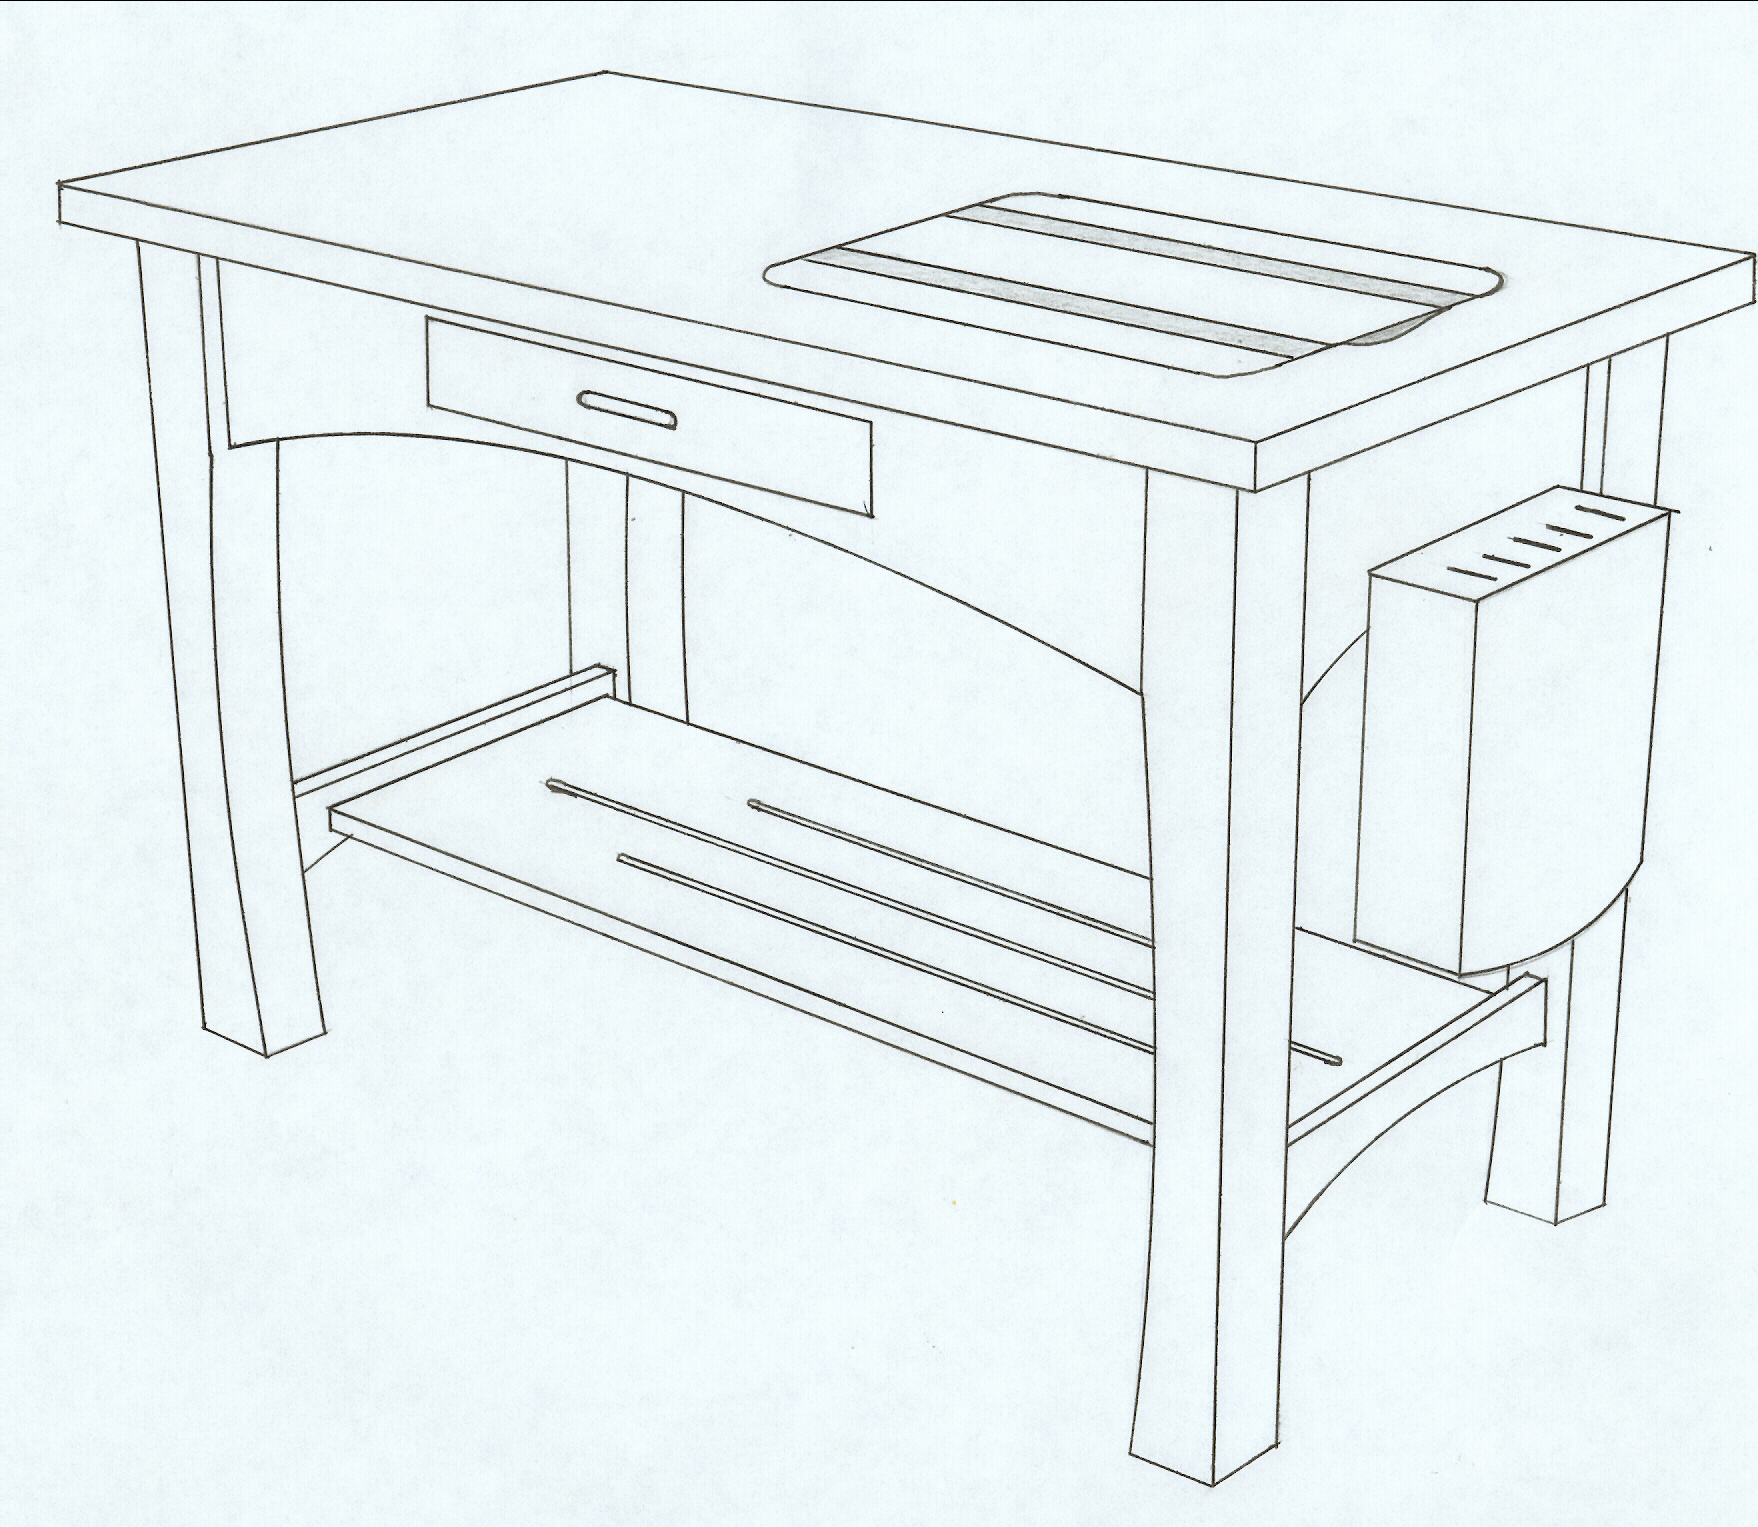 Design furniture drawing for Chair design drawing